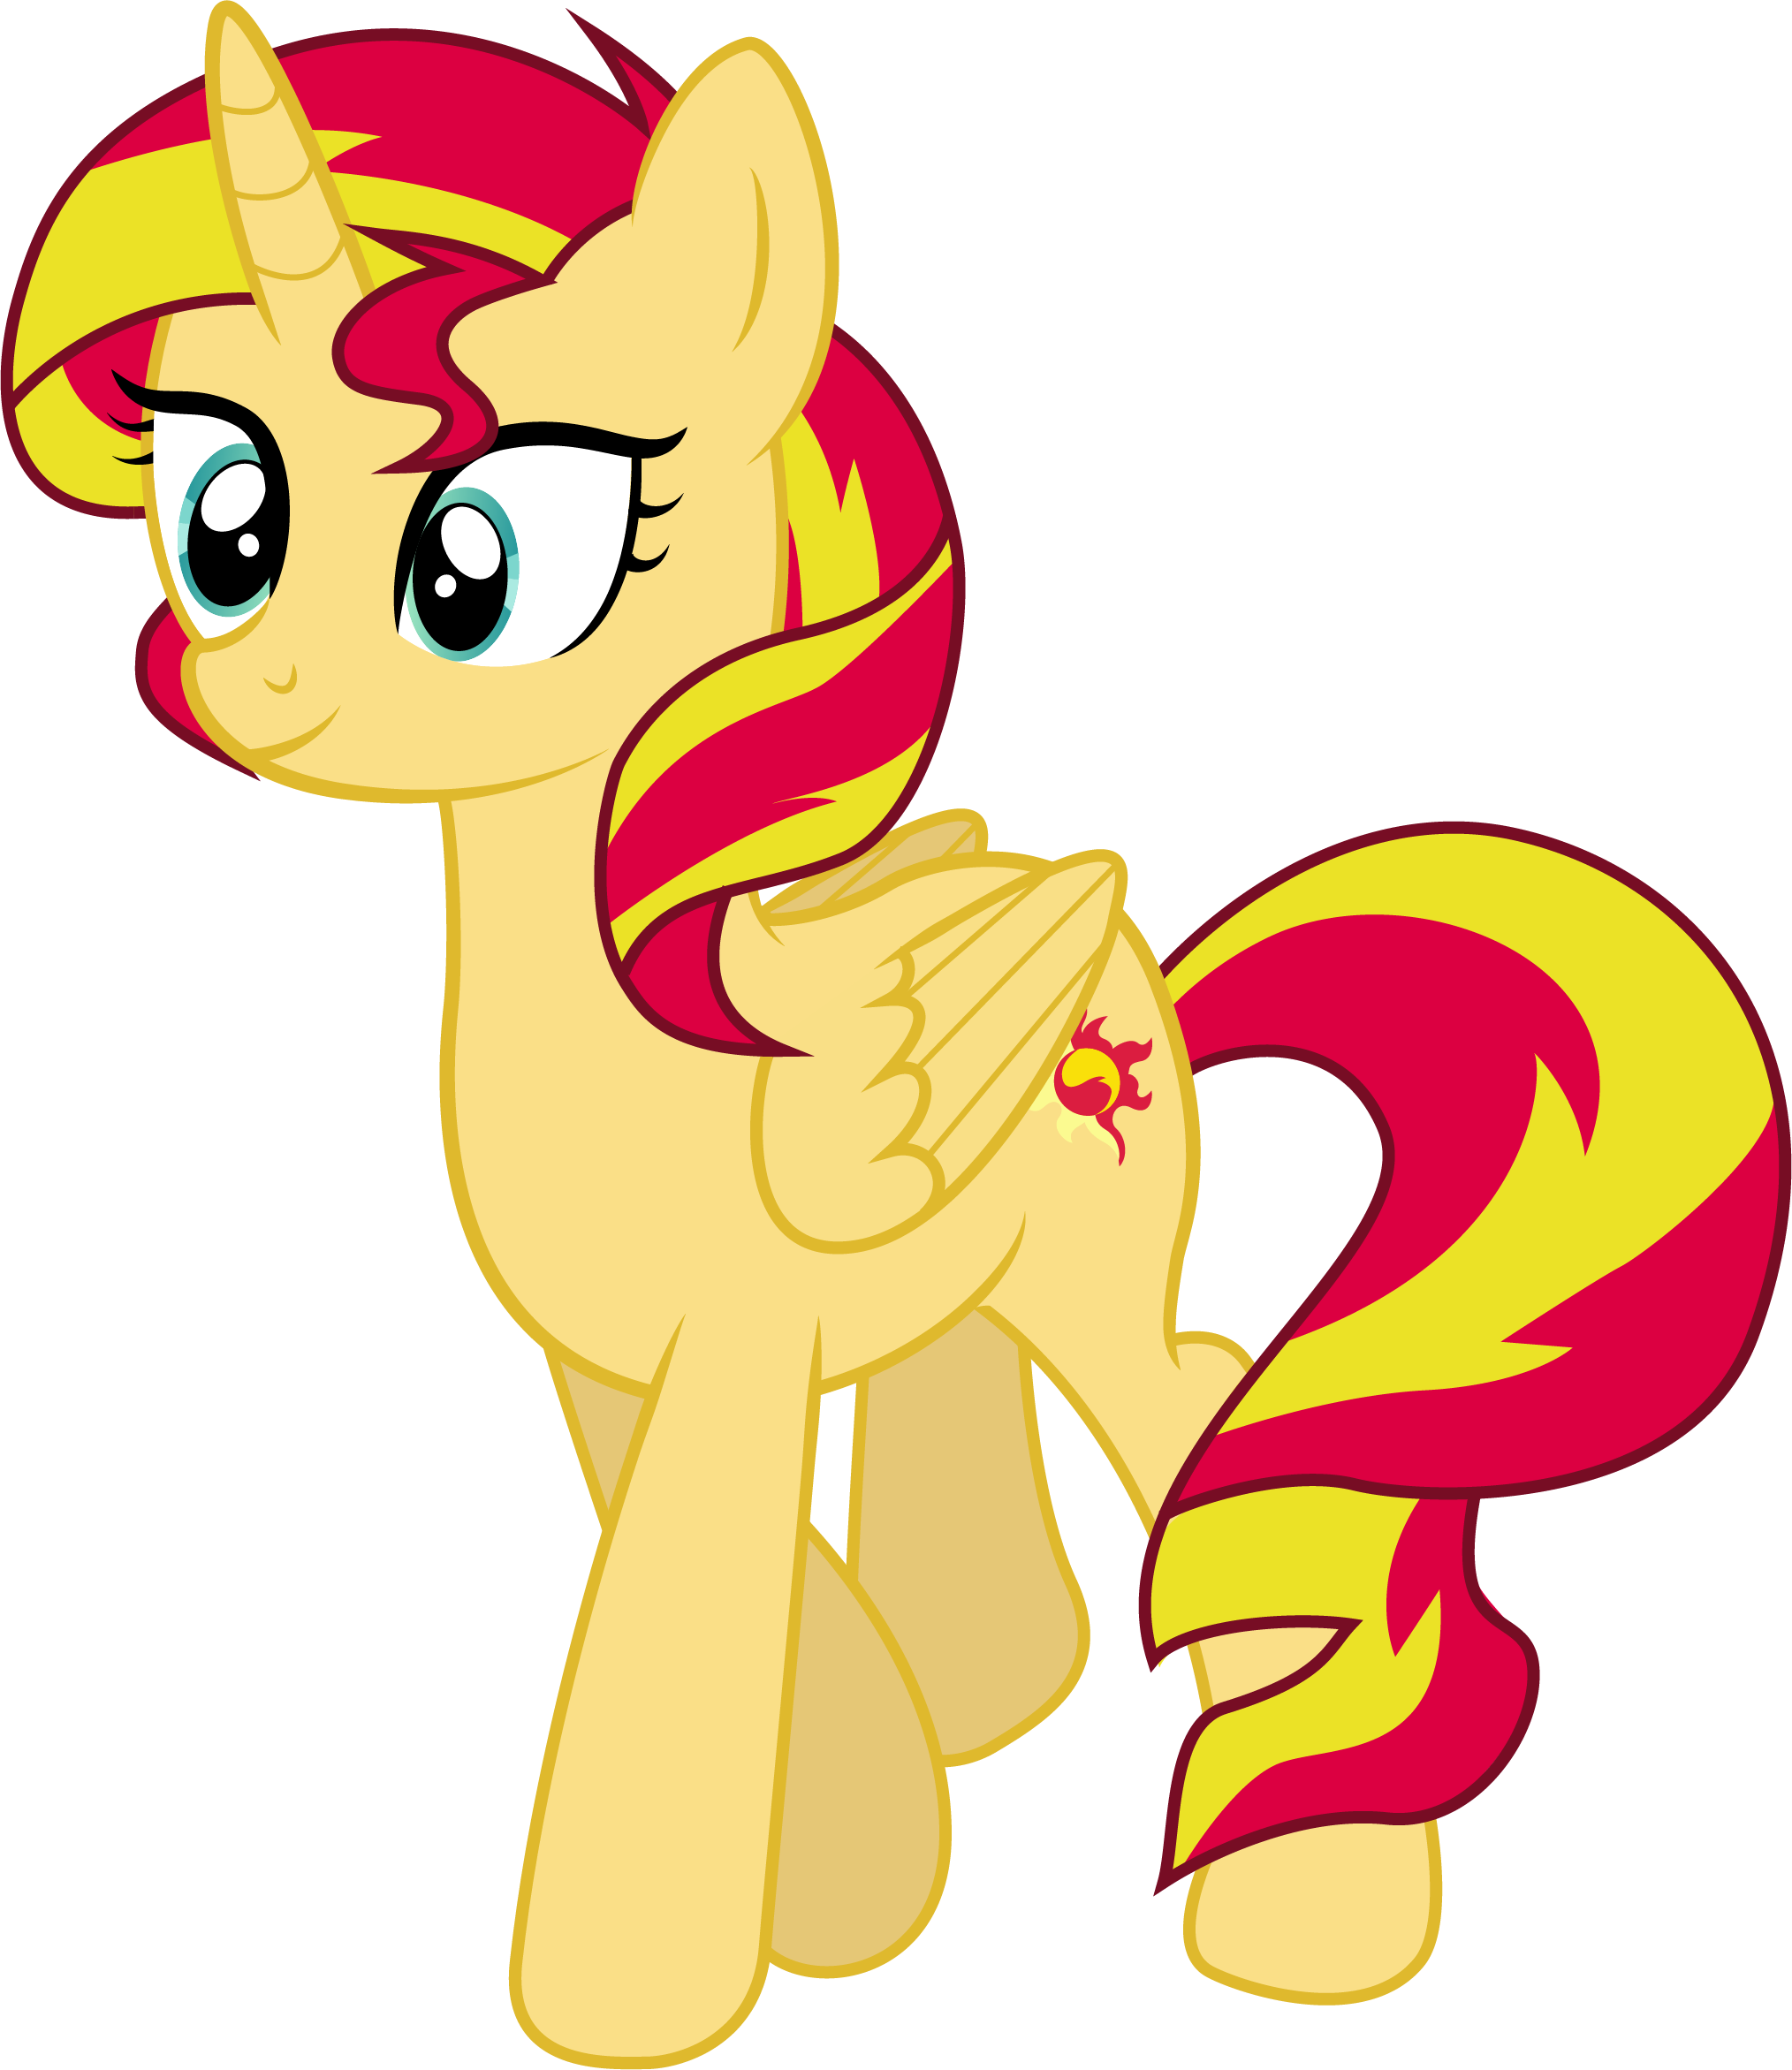 Princess Sunset Shimmer by illumnious